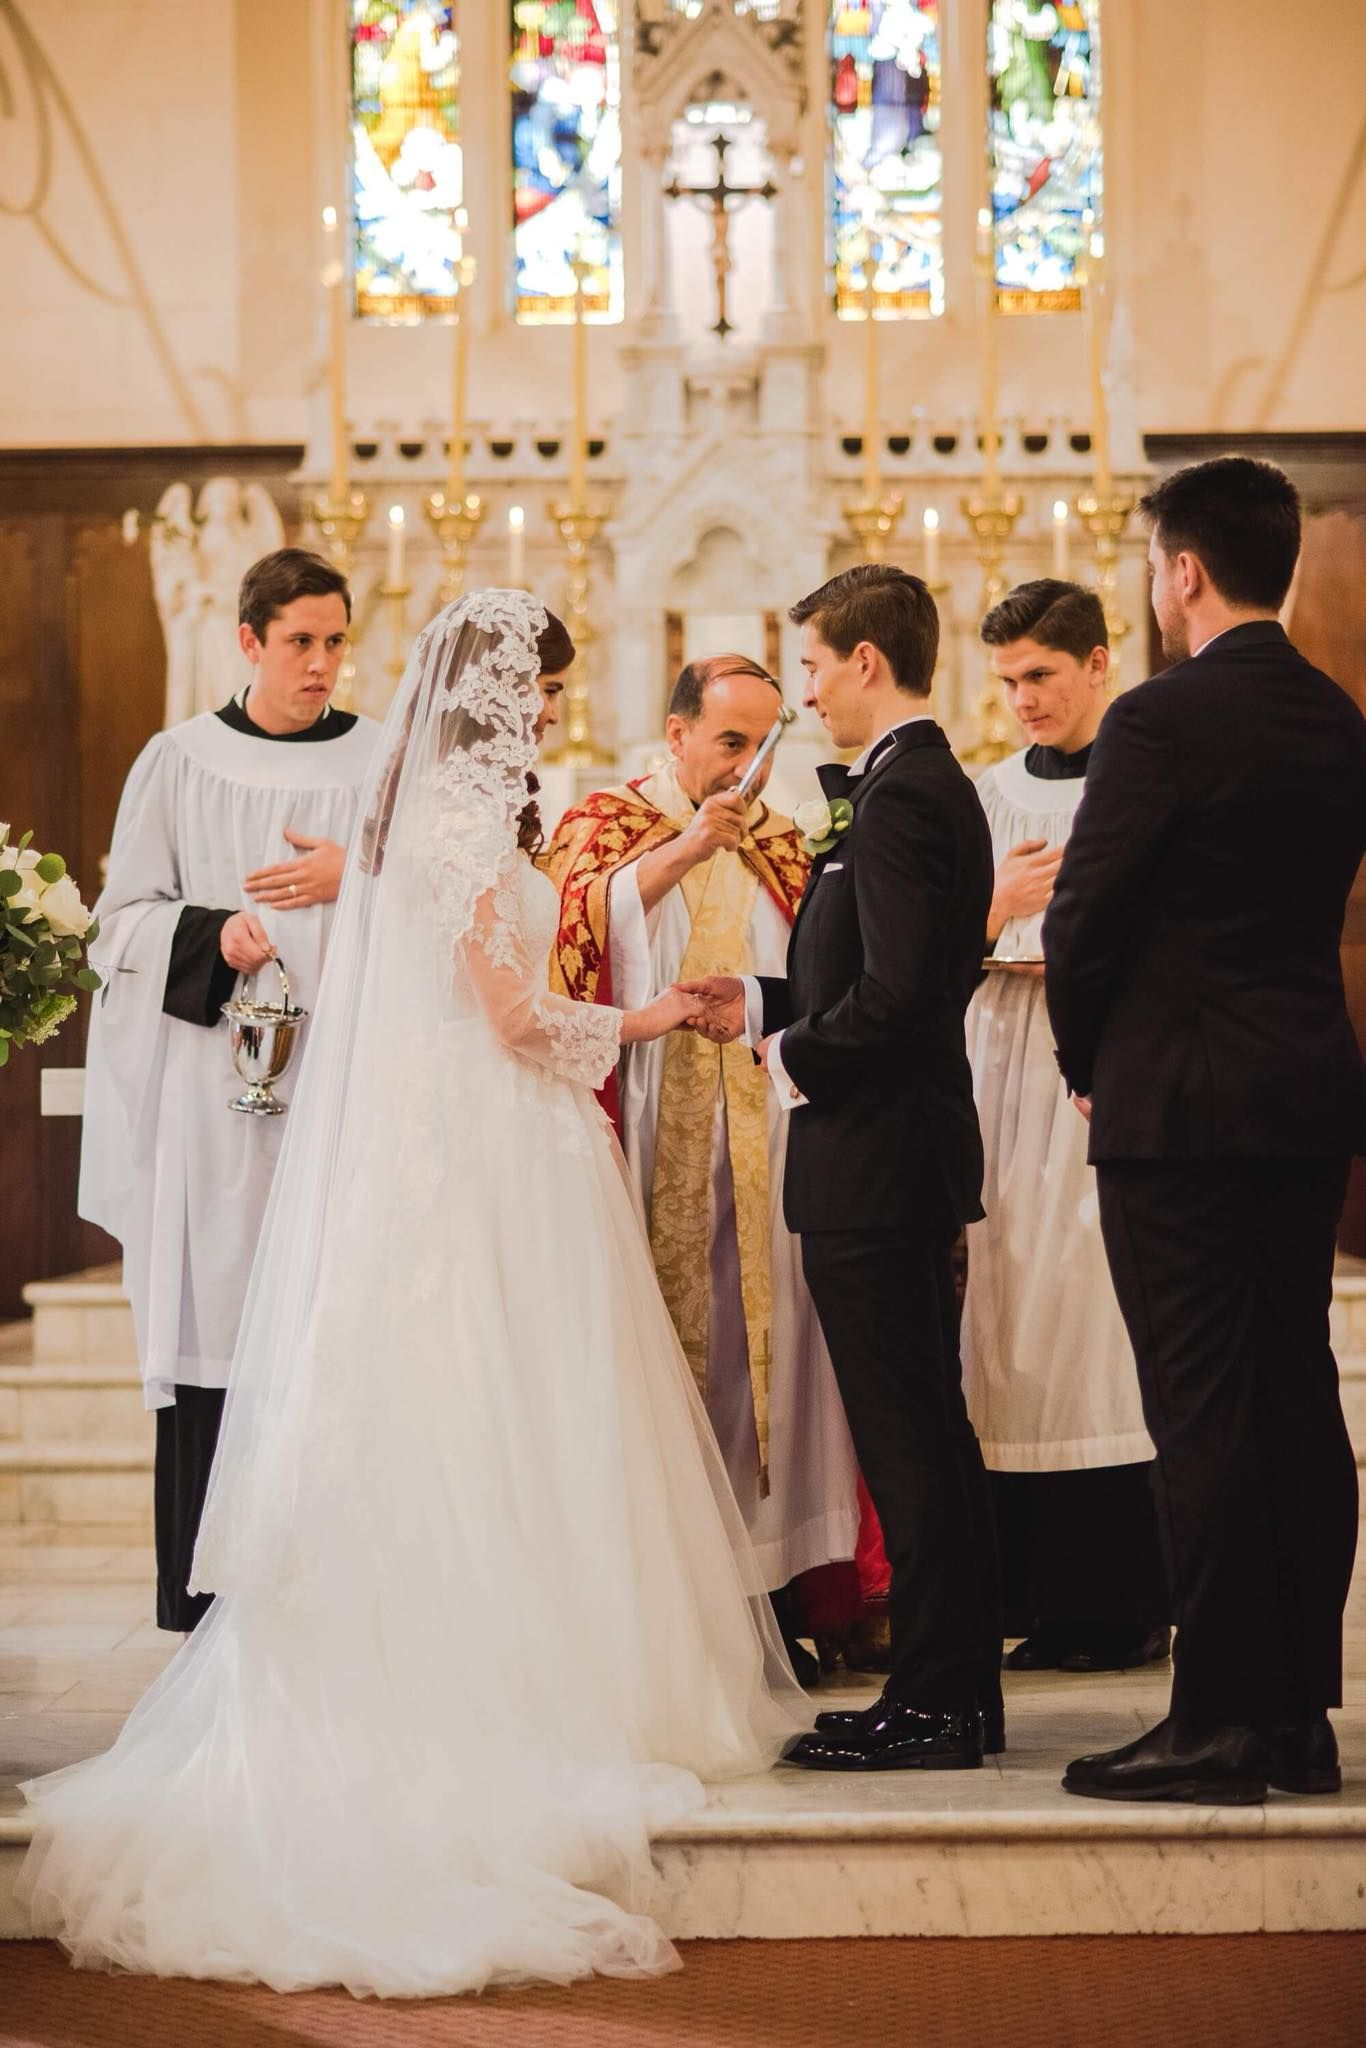 Nuptial Latin Mass  Catholic wedding dresses, Catholic wedding